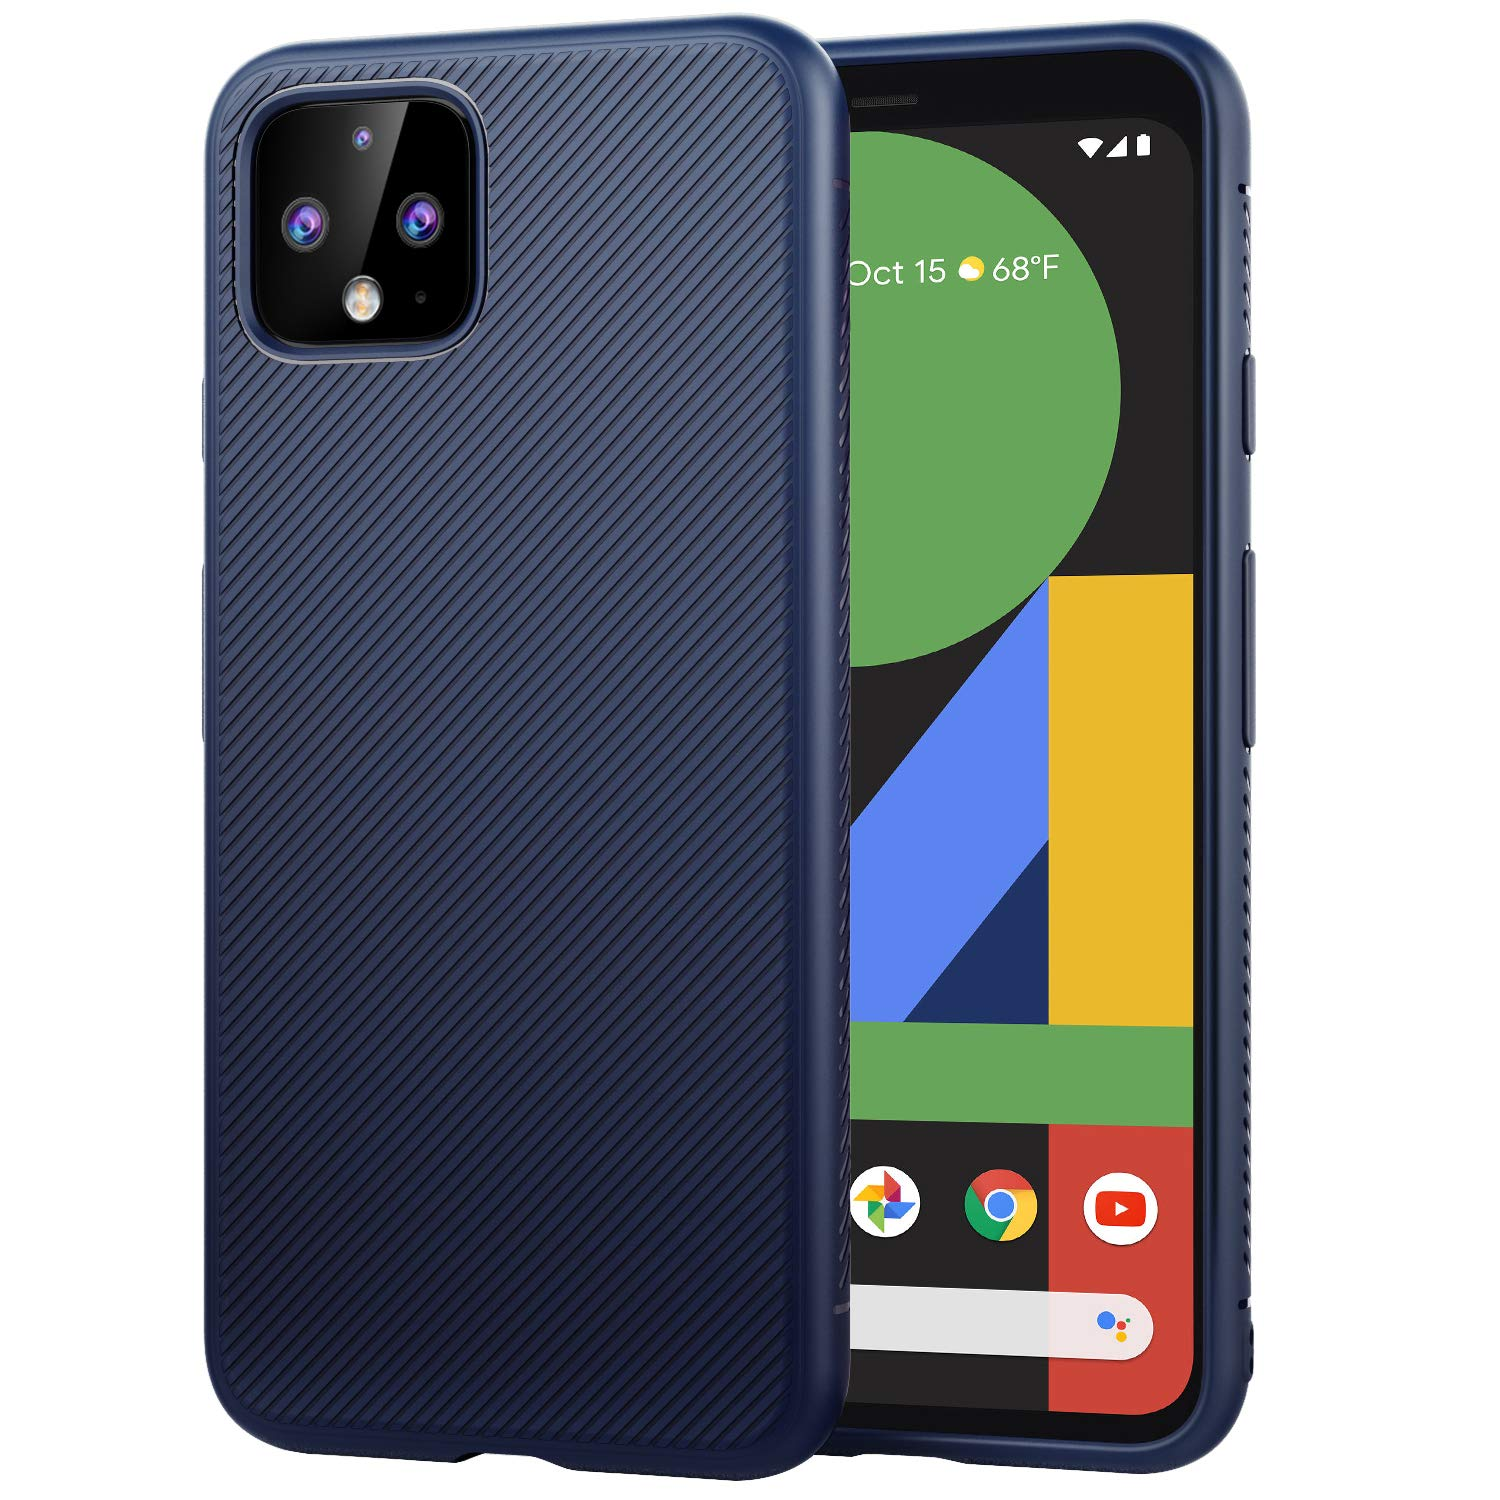 MoKo Compatible with Google Pixel 4 Case, Lightweight Shockproof Protective Phone Case, TPU Bumper Edge Twill Phone Cover for Google Pixel 4 5.7 inch 2019 - Blue